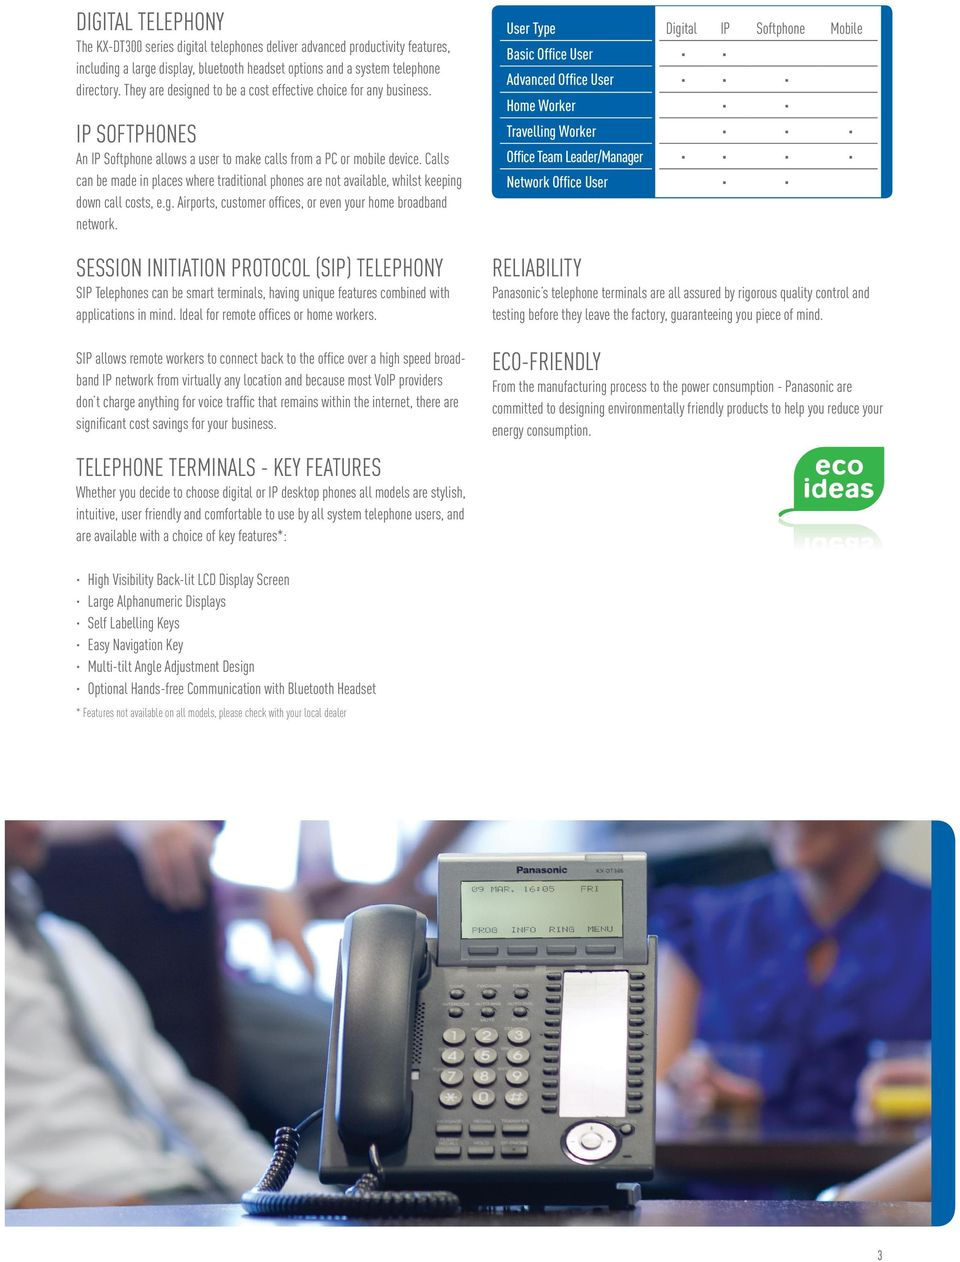 Calls can be made in places where traditional phones are not available, whilst keeping down call costs, e.g. Airports, customer offices, or even your home broadband network.